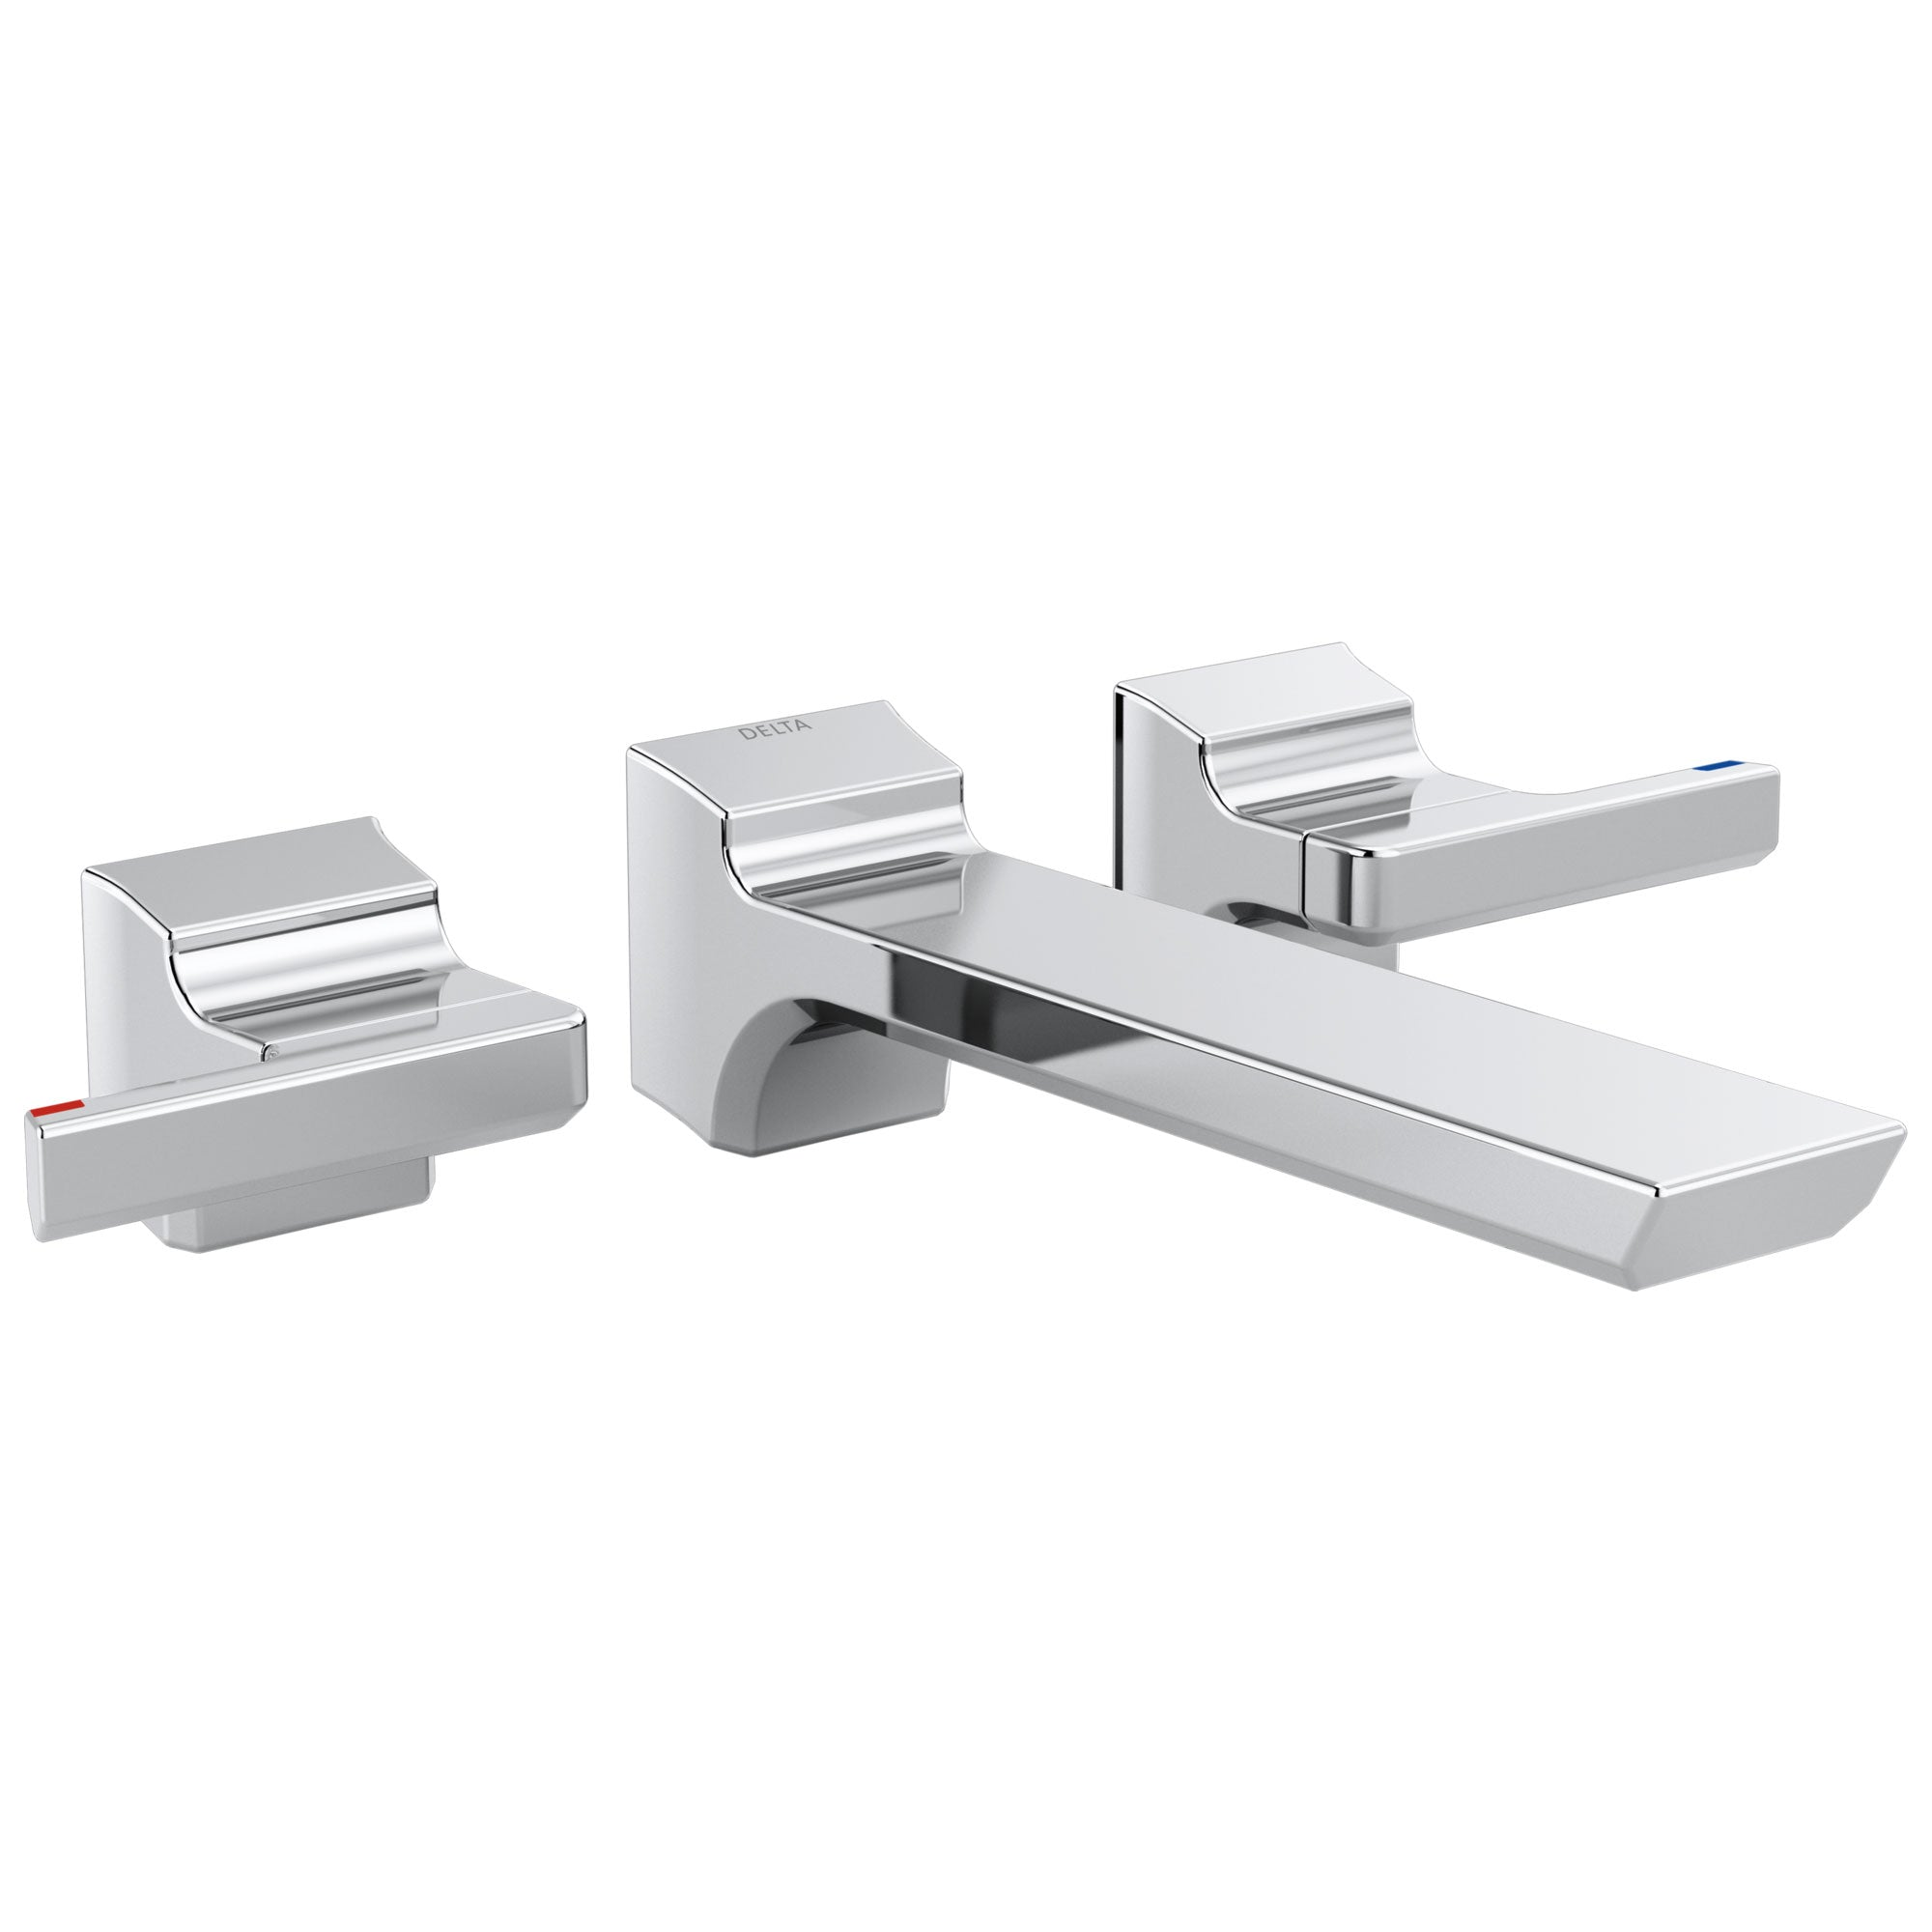 Delta Pivotal Chrome Finish Two-Handle Wall Mount Bathroom Faucet Trim Kit (Requires Valve) DT3599LFWL